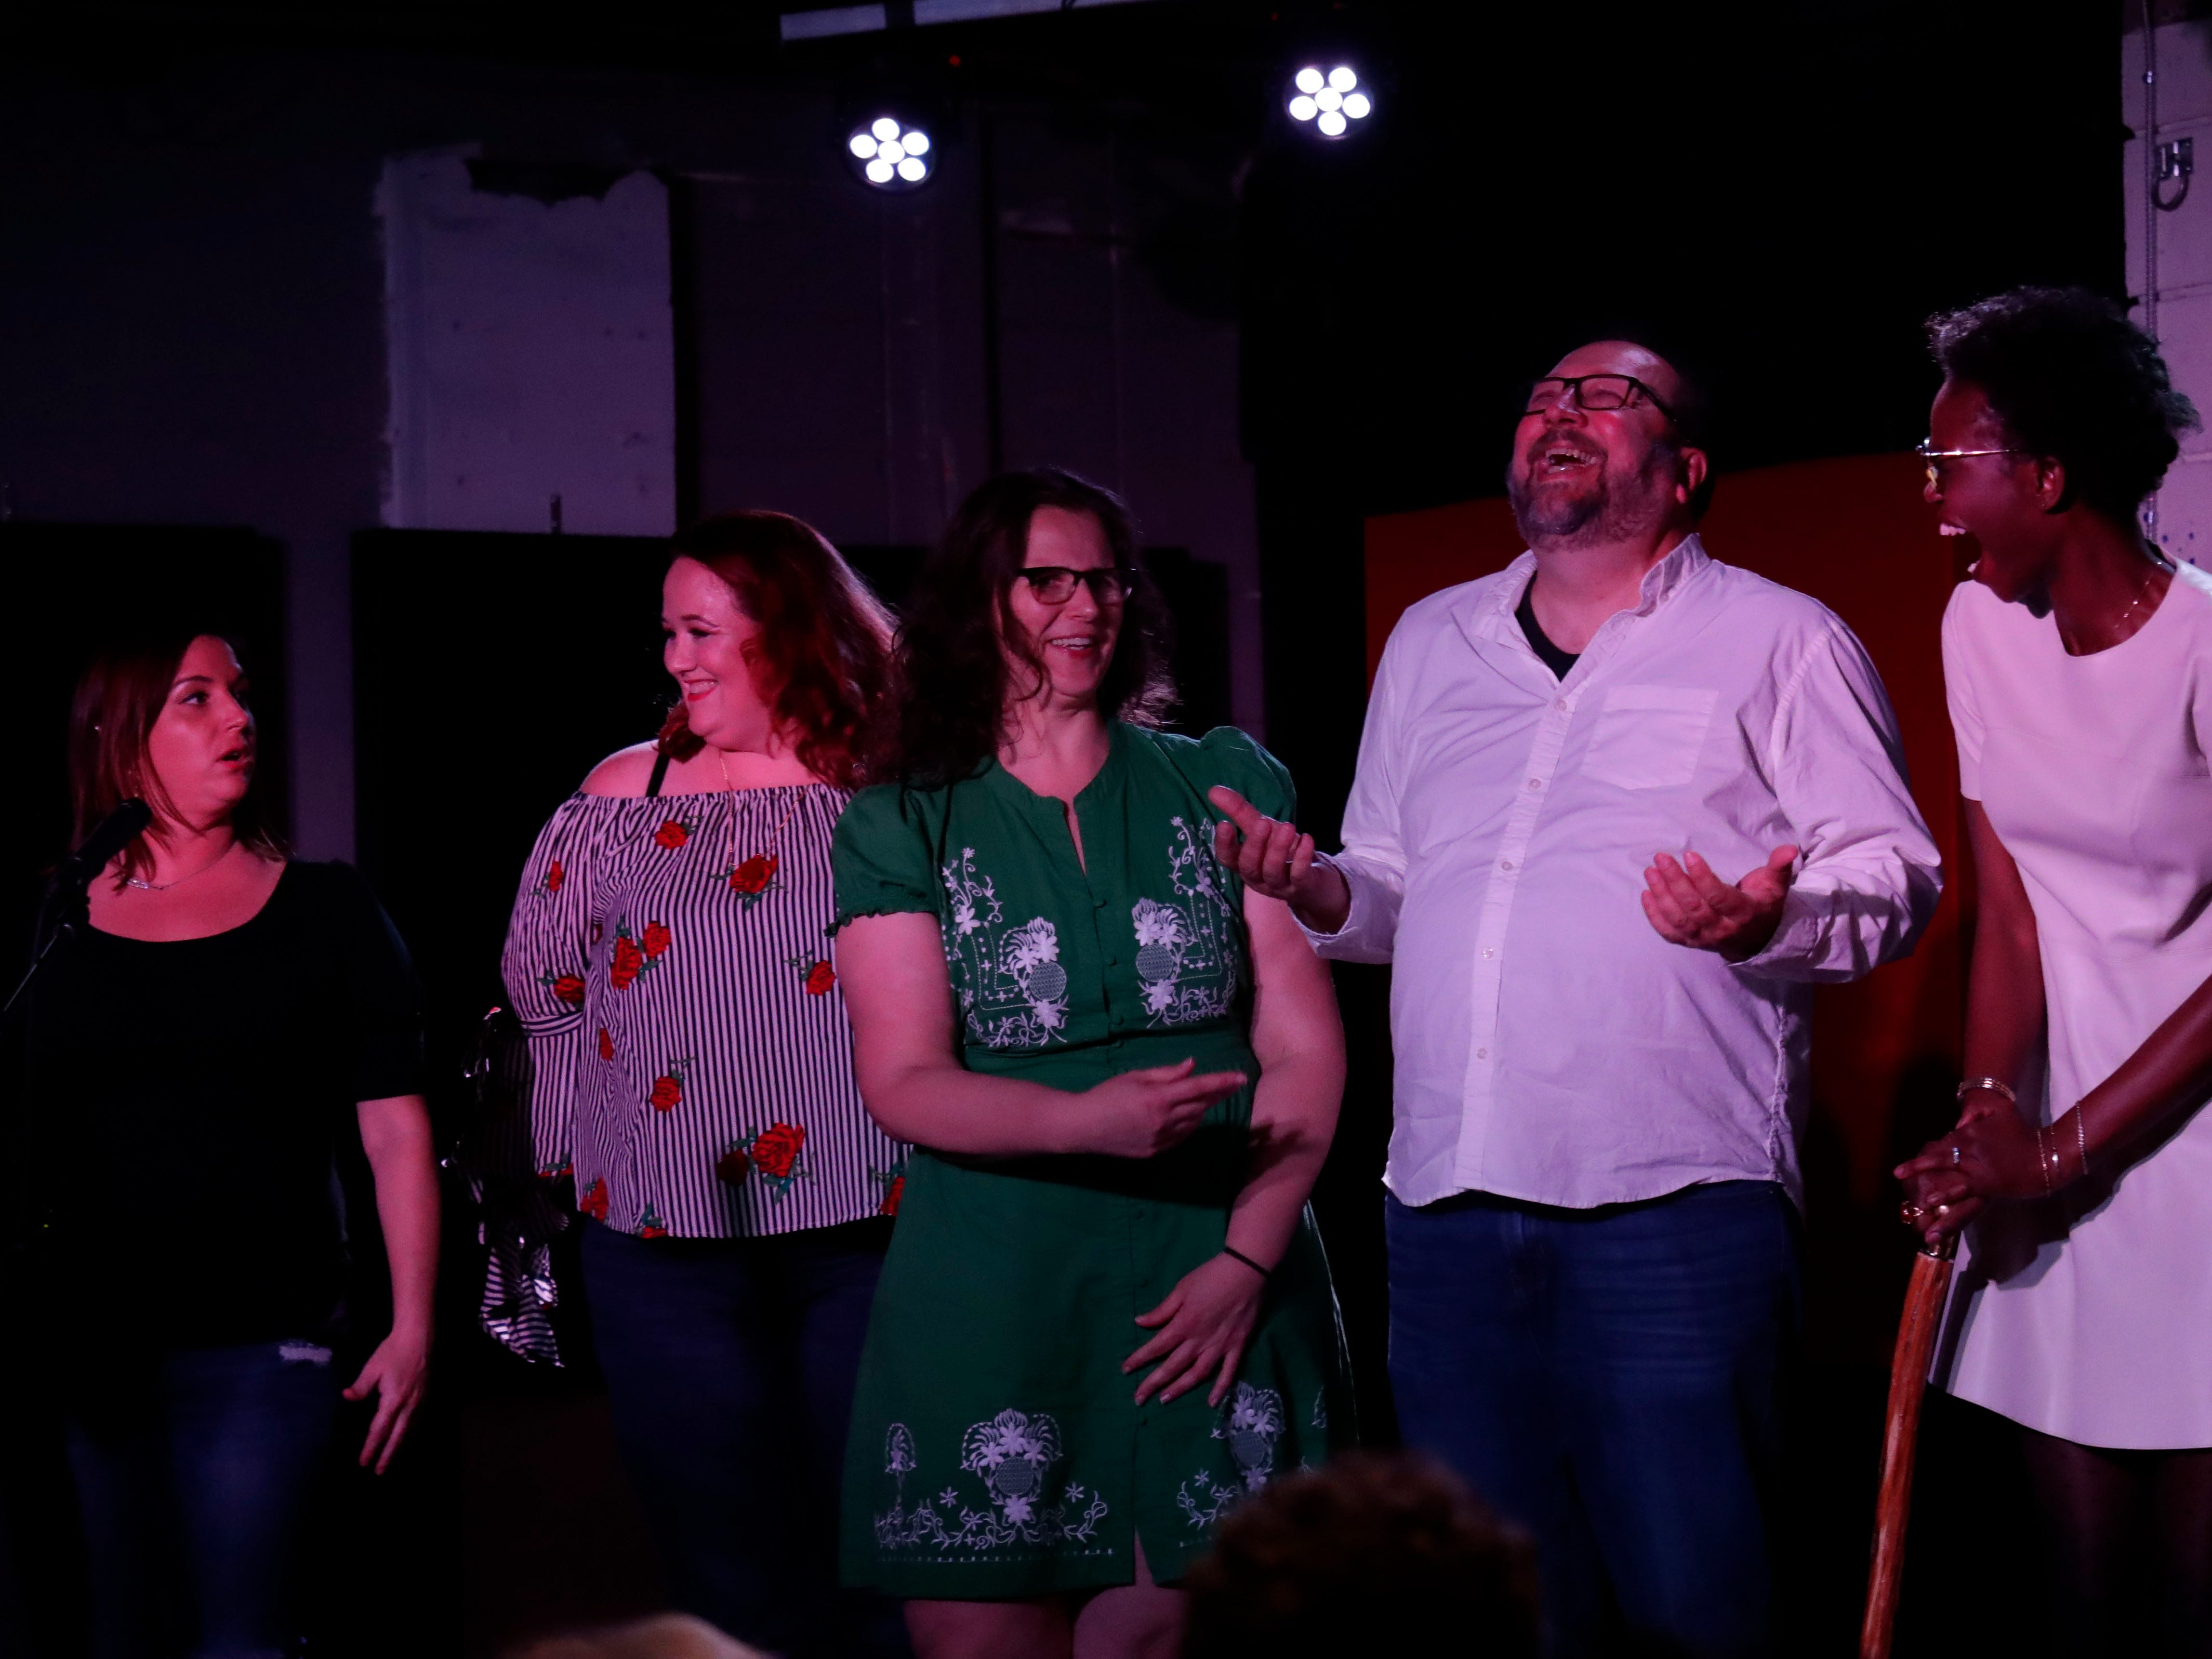 Chryssy Moor, left, Mandy Bianchi, Holly Thompson, Jeff Schweers, and Ashley Smith, the five tellers from the Story Teller's Project at the Wilbury, Tuesday Feb. 12, 2019 take the stage for a final bow after sharing their stories.